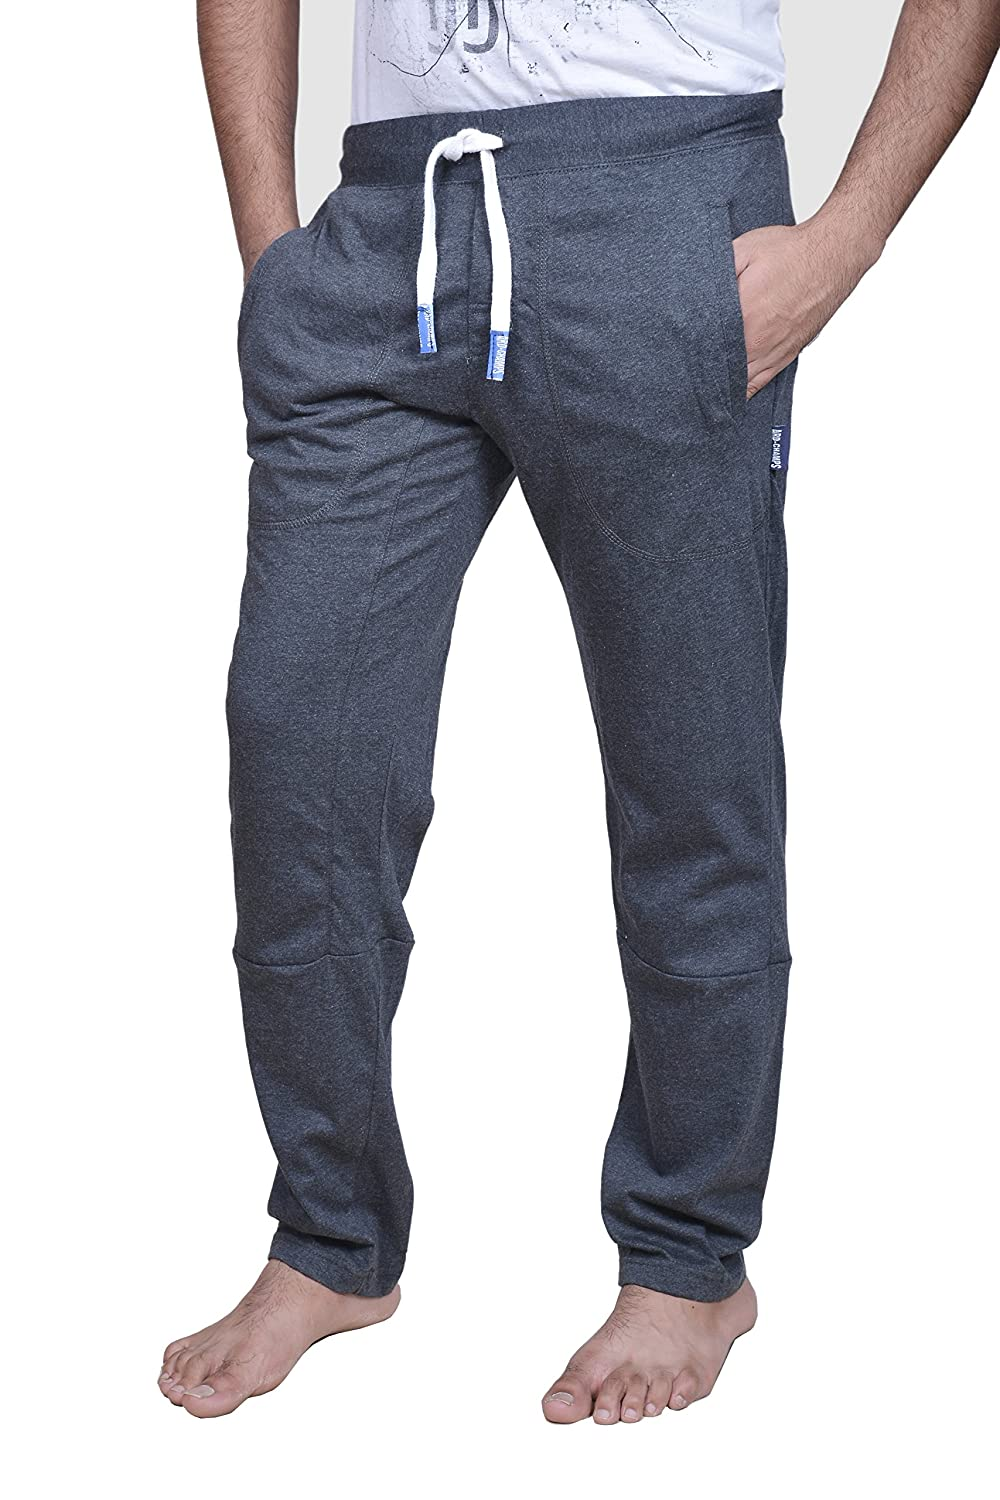 ARD-Champs Mens Jersey Pants Joggers Pants Casual trouser Normal Fit Bottom